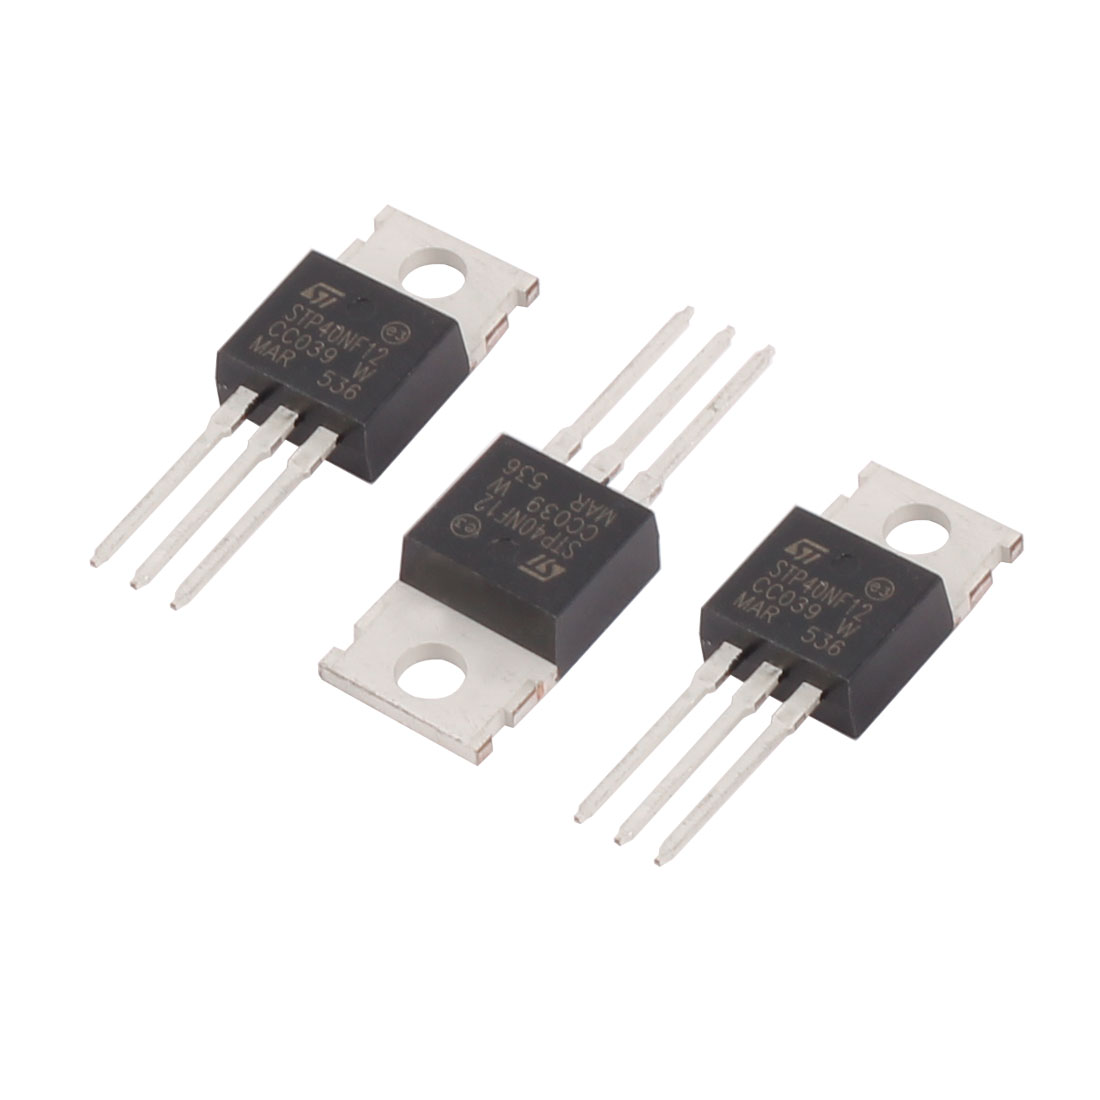 3 Pcs 40A 120V STP40NF12 N-Channel Power MOSFET TO-220